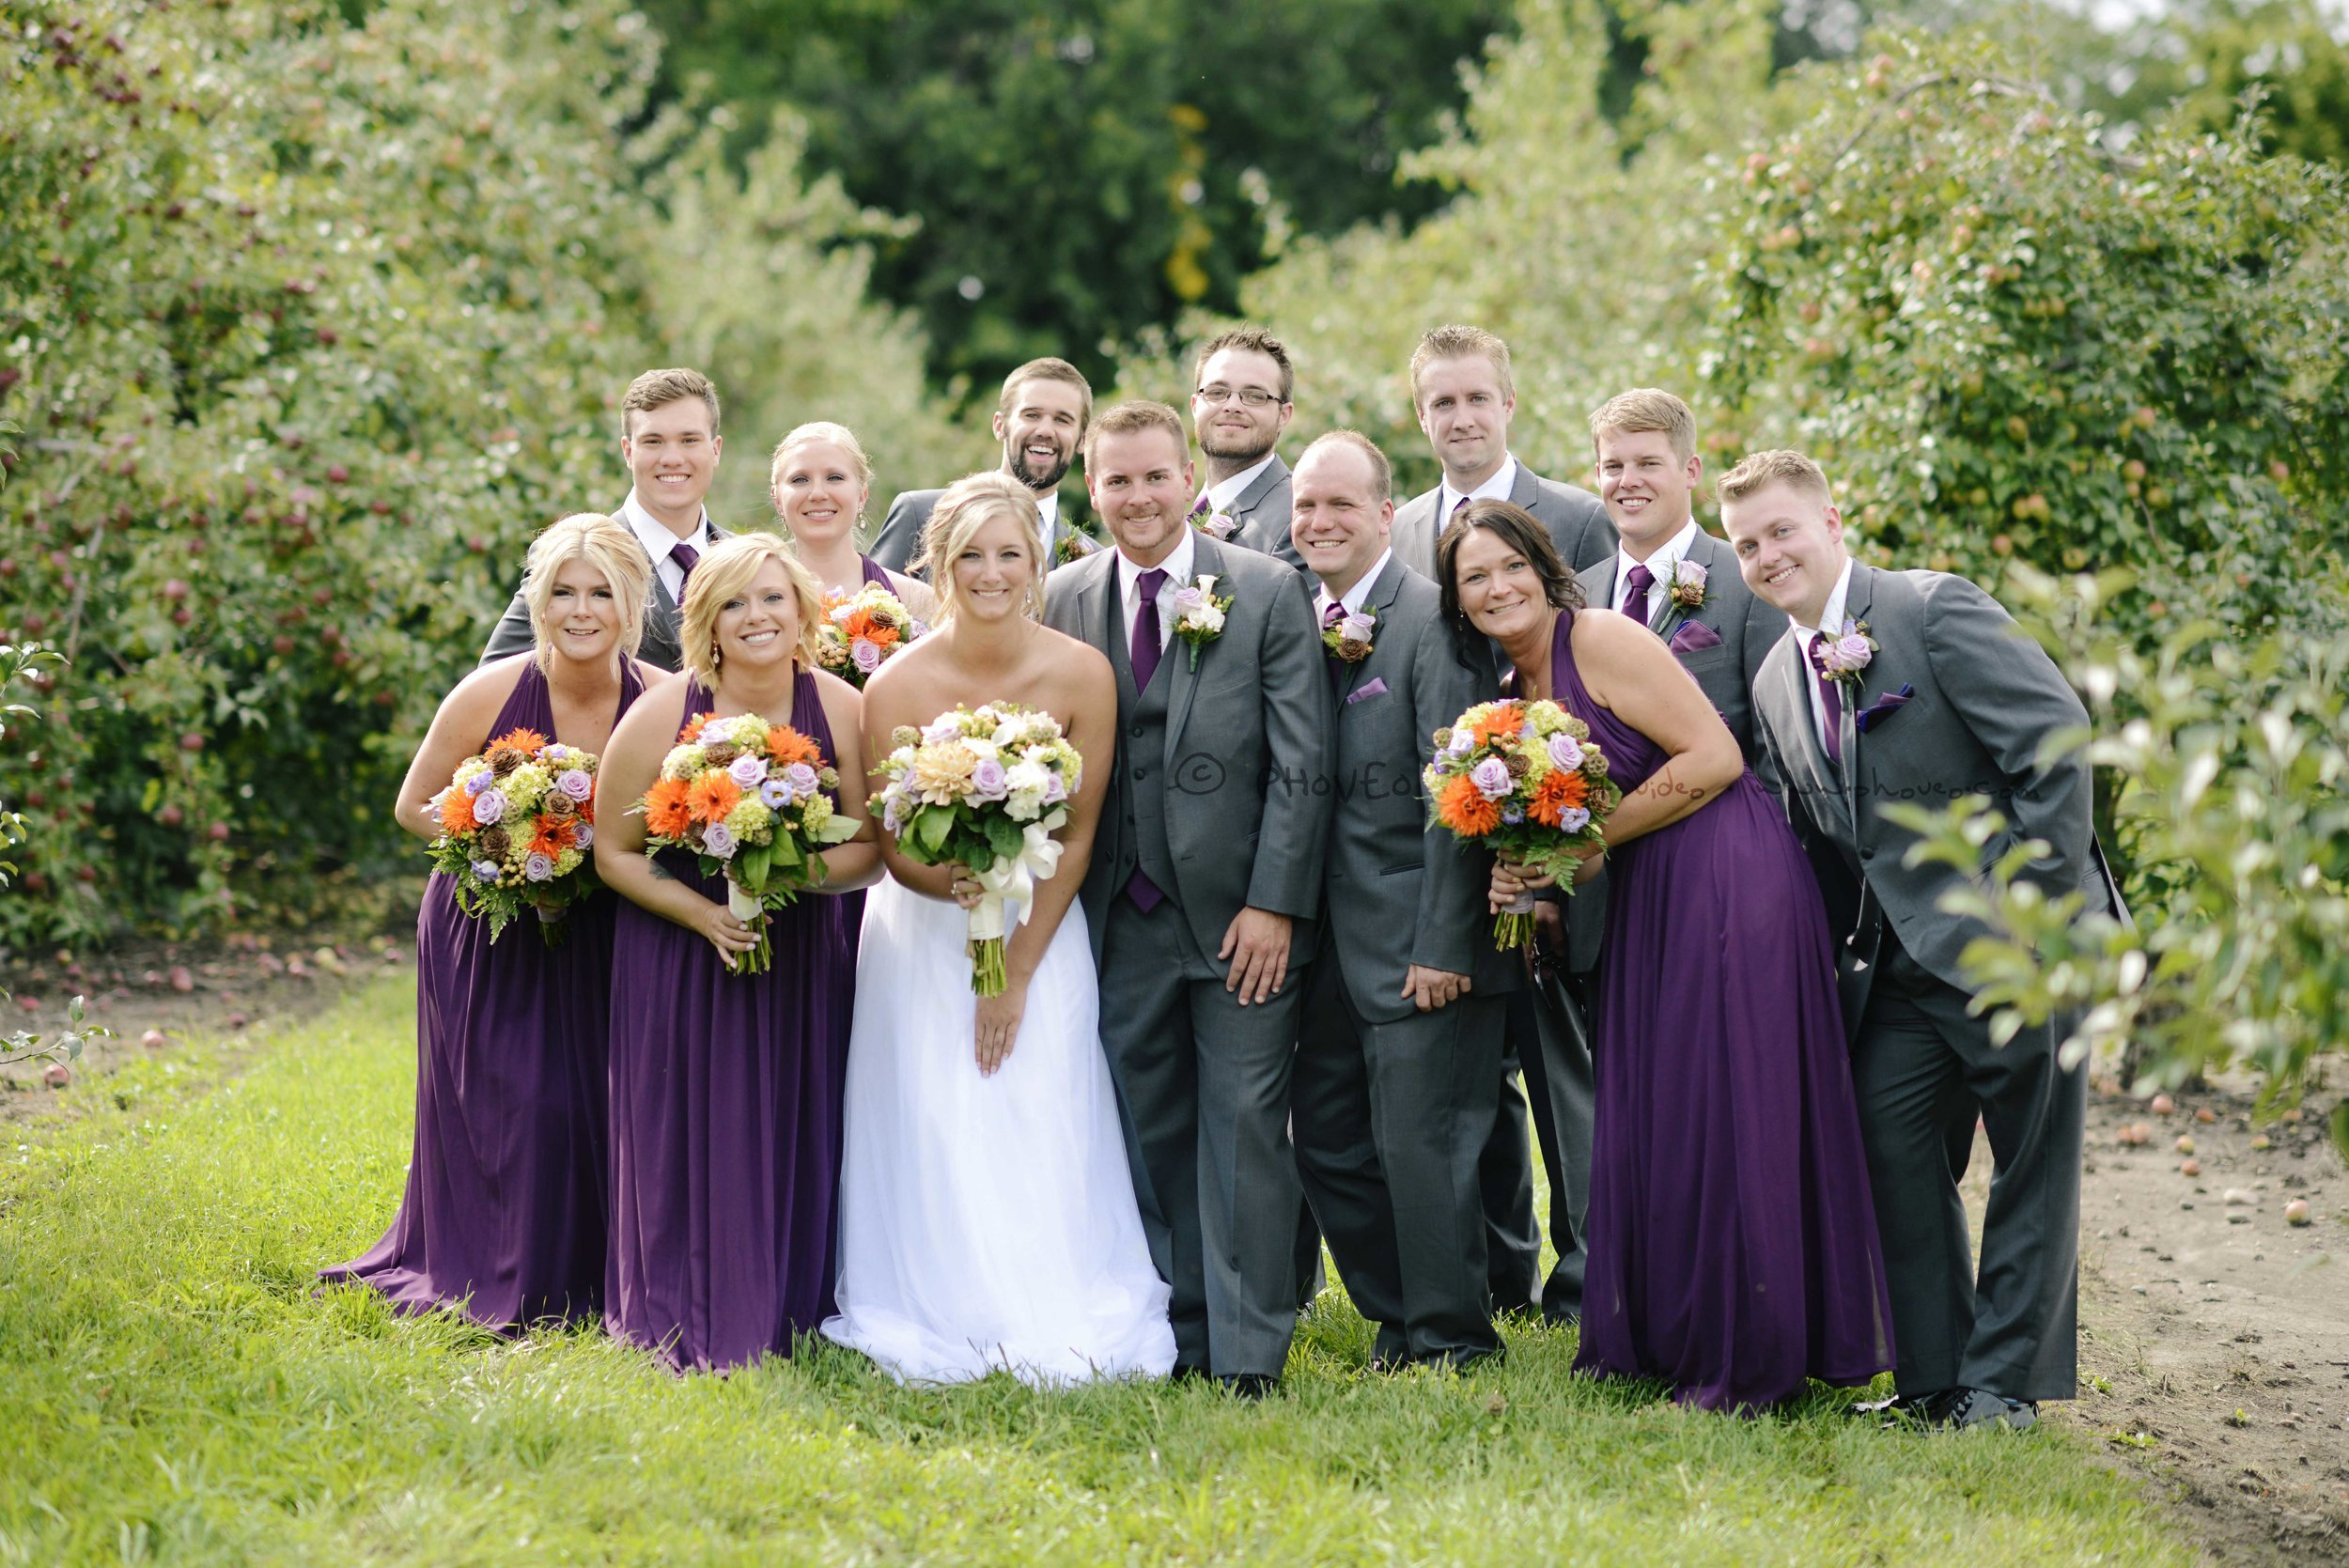 WM_20160826_Katelyn+Tony_7.jpg